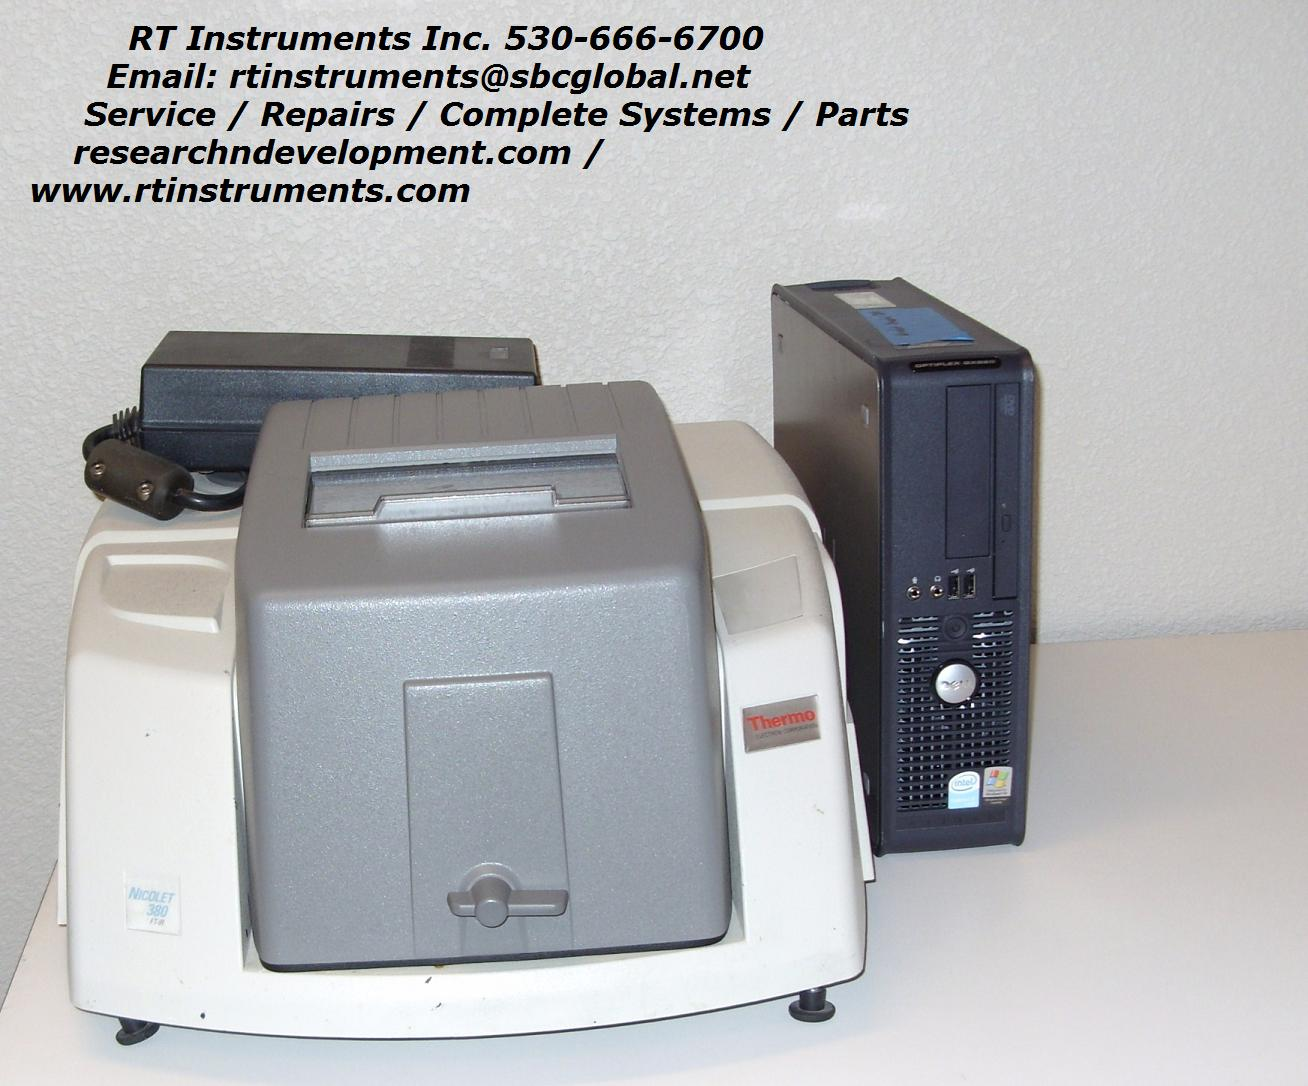 FTIR Thermo Nicolet 380 FTIR